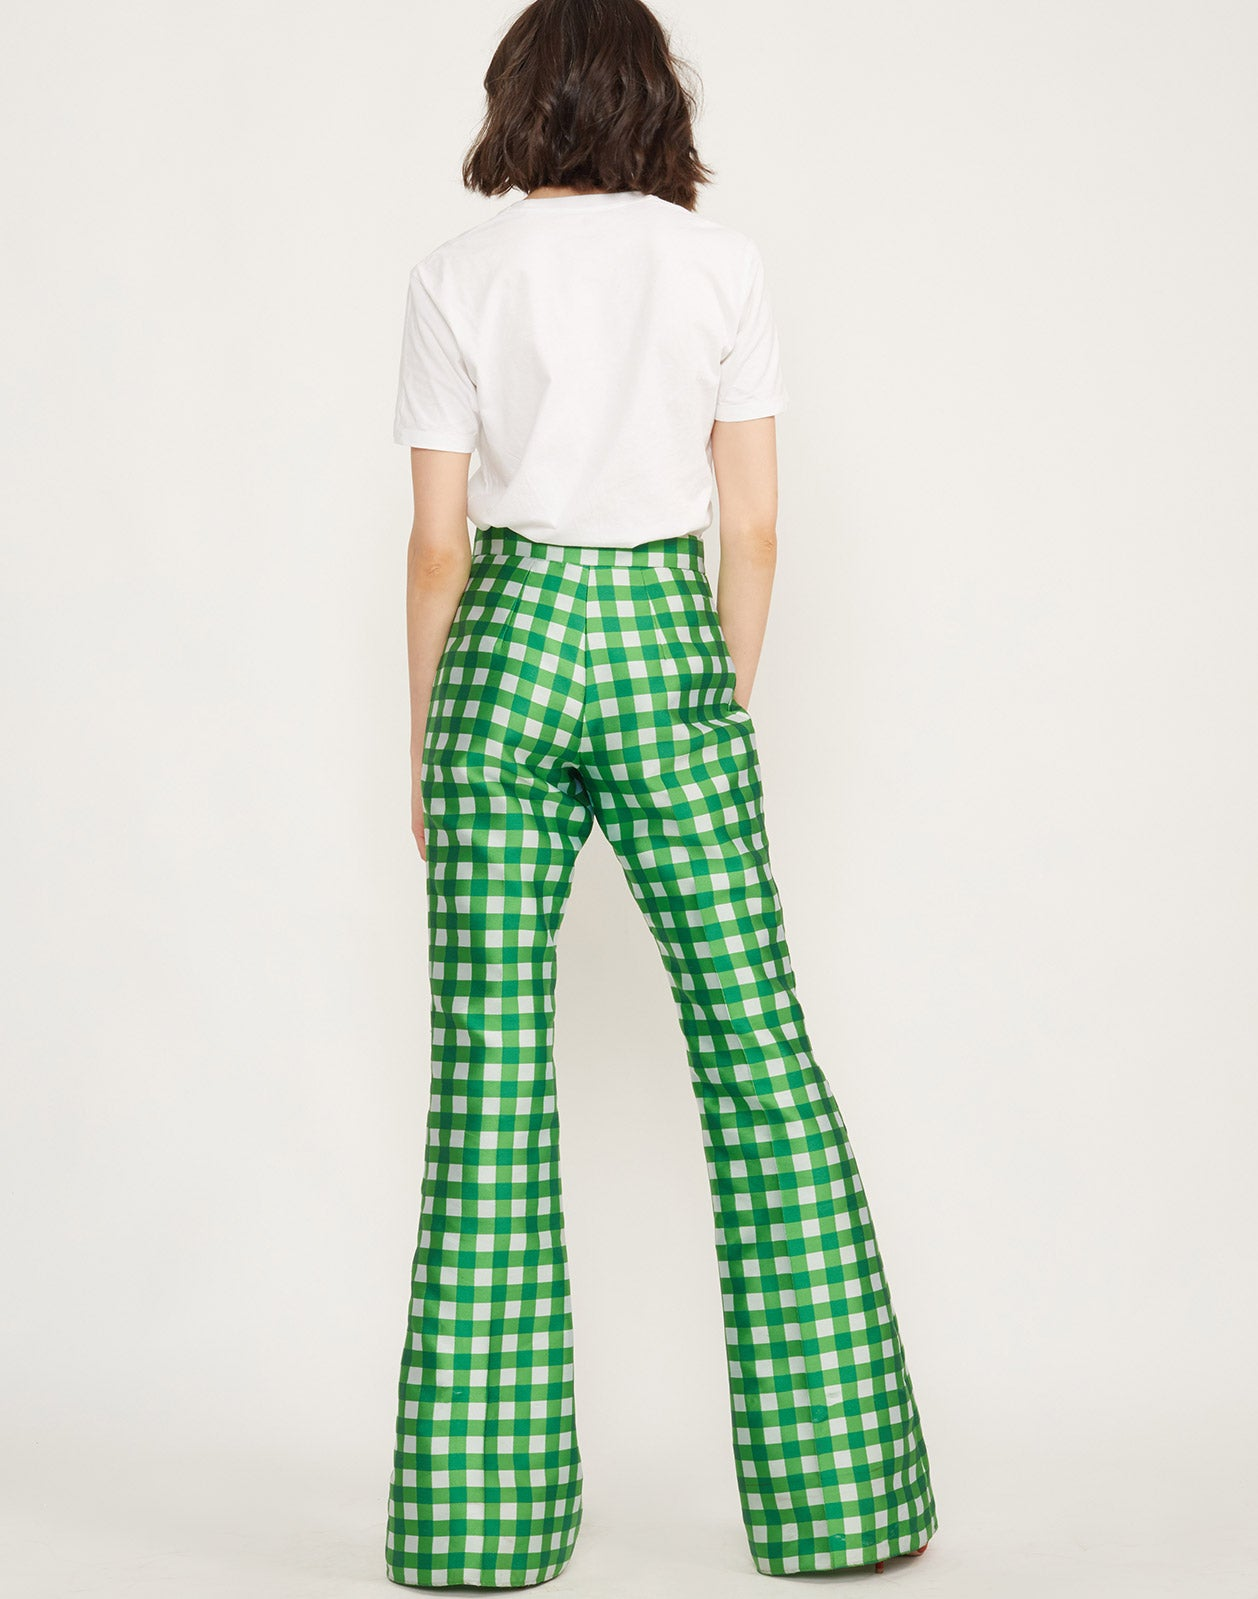 Back View of Davis Gingham Pant